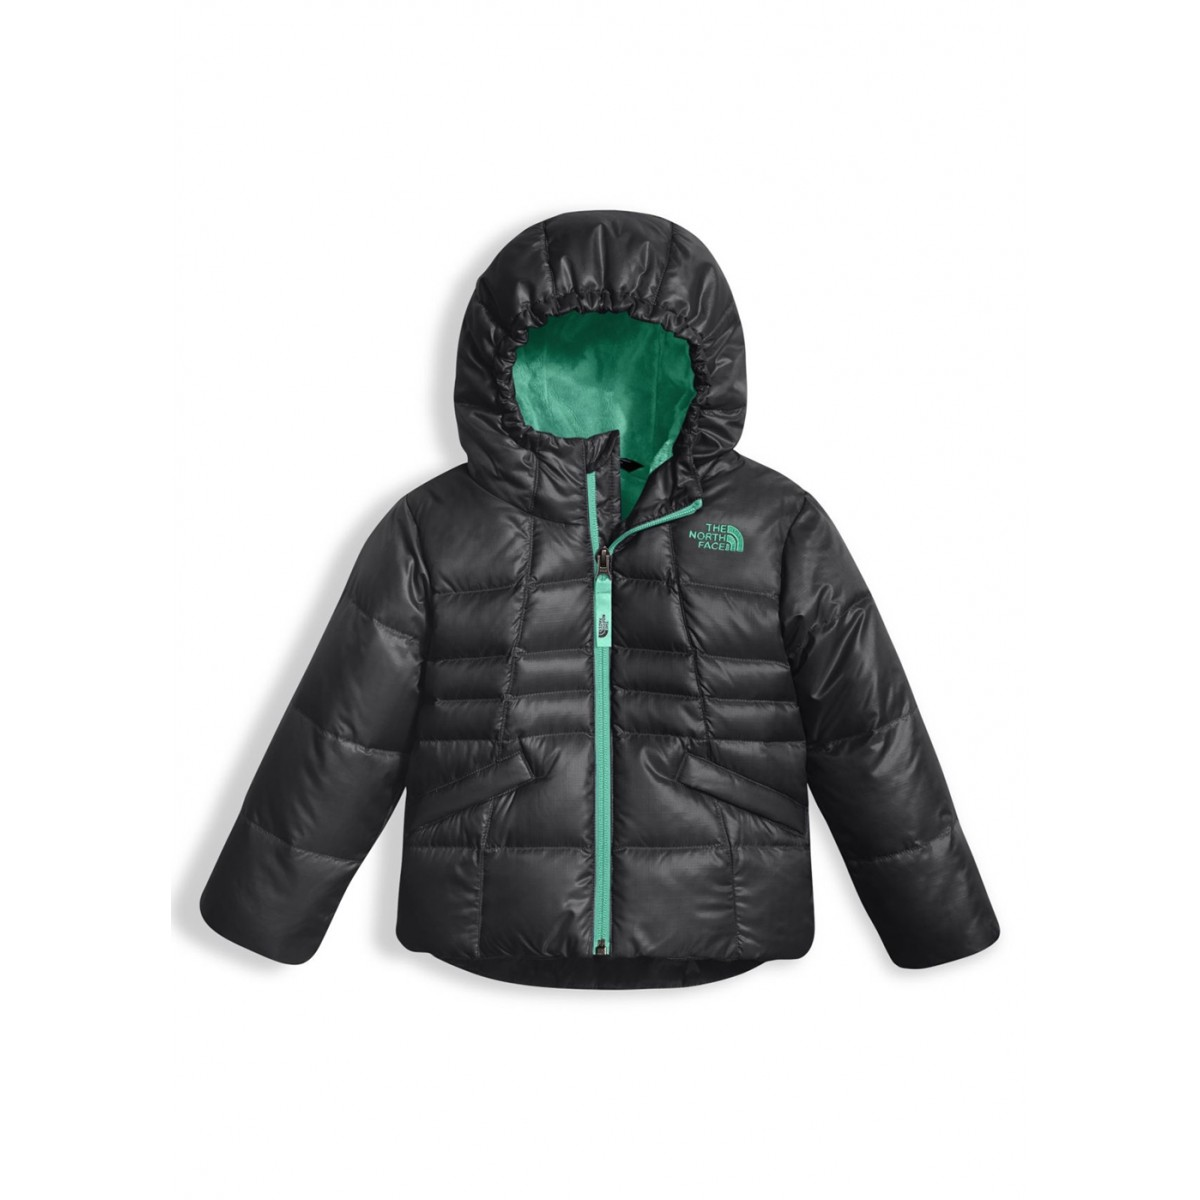 5e39fdd44 The North Face Toddler Girls Moondoggy 2.0 Down Jacket